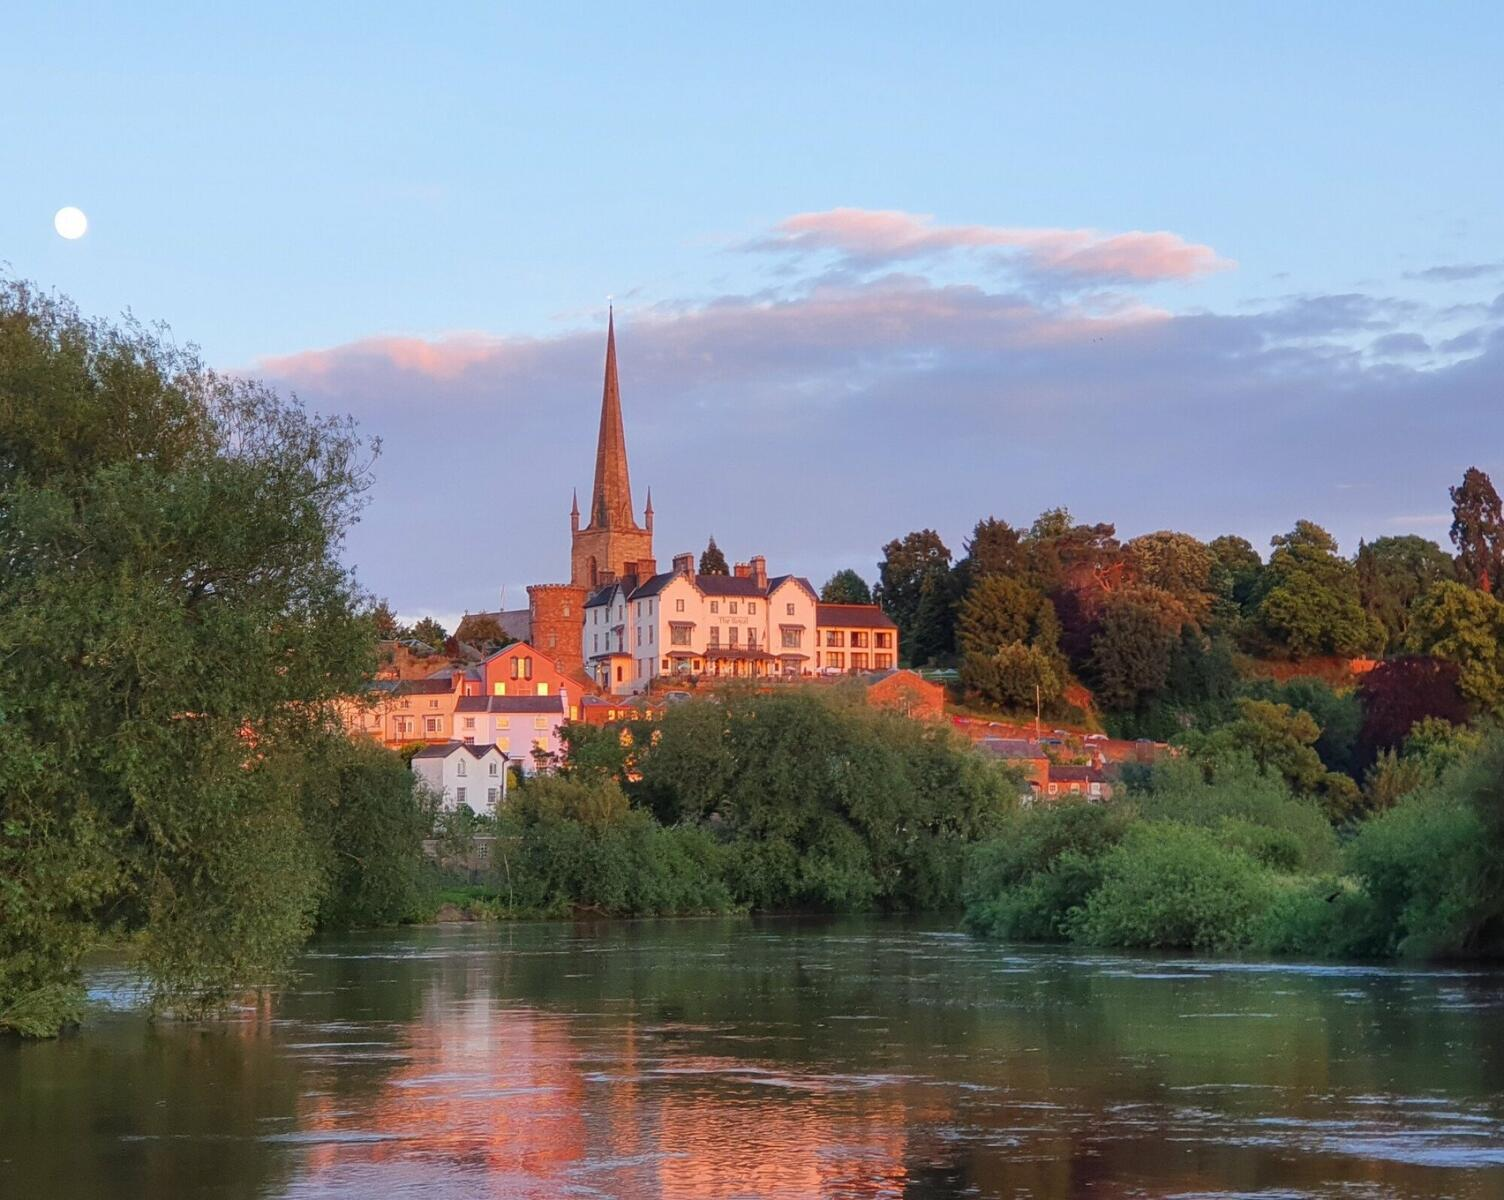 Paddle to, from or through Ross-on-Wye